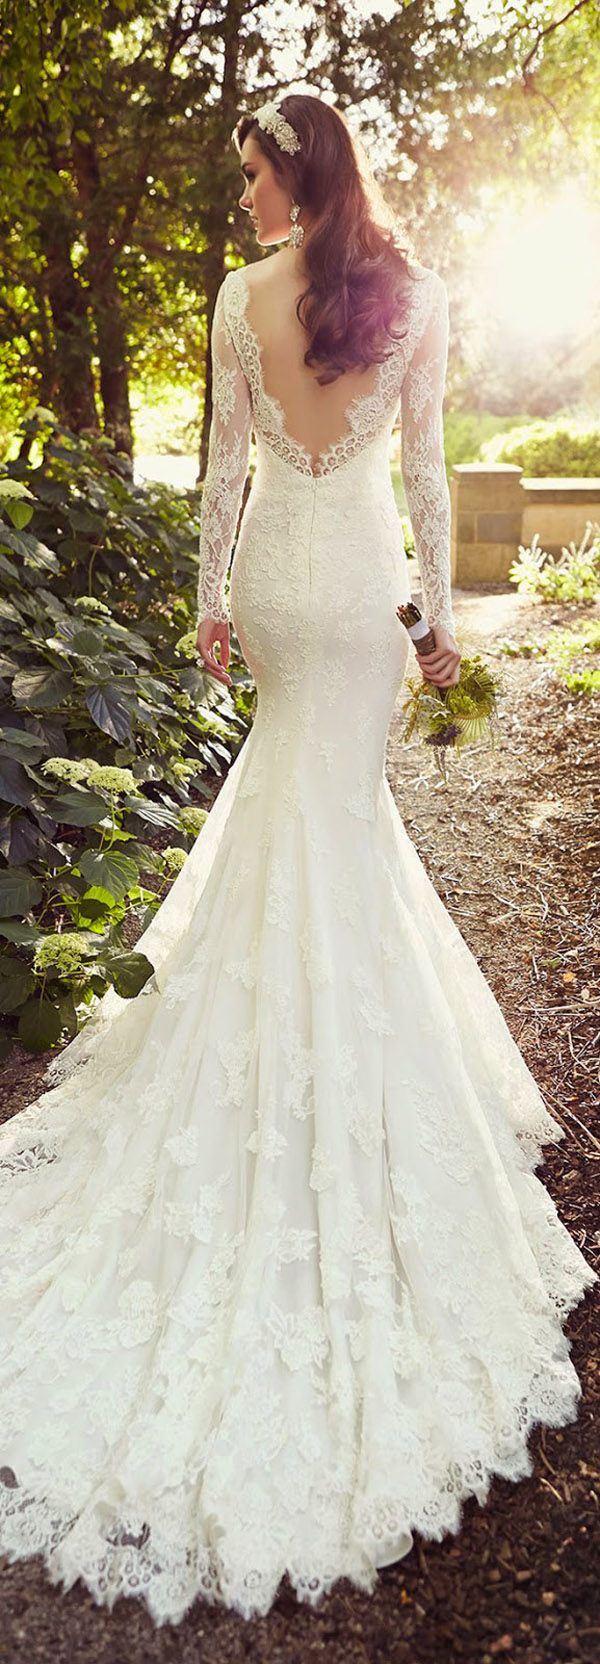 Vintage pearl bridal blog real brides news amp updates wedding - Essense Of Australia Vintage Lace Wedding Dresses